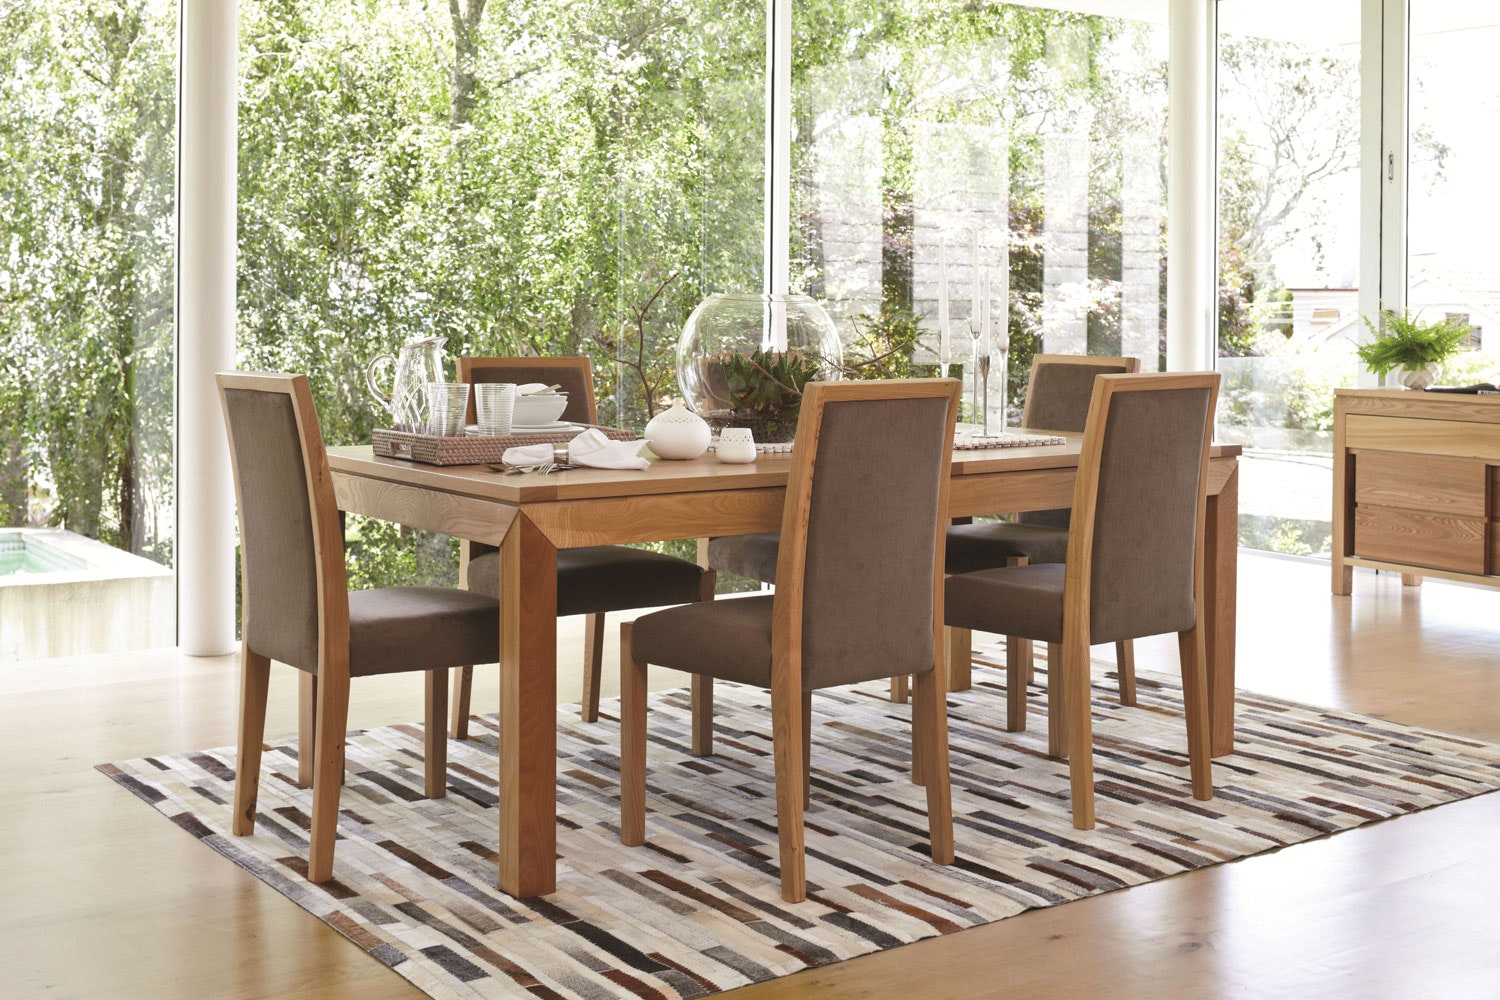 Harveys Dining Table And Chairs Images Dining Table Ideas : zac dining suite 7 from sorahana.info size 1500 x 1000 jpeg 243kB